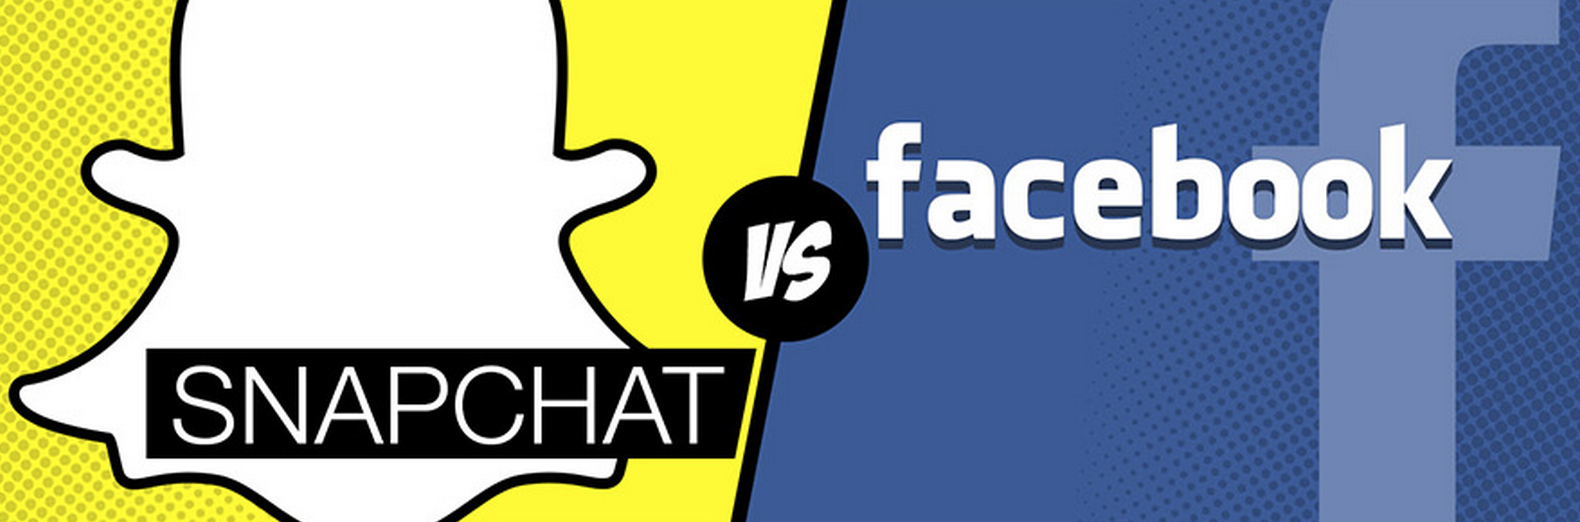 a comparison of snapchat and facebook Facebook vs instagram, snapchat vs whatsapp: an interesting article that did a great comparison between snapchat and facebook, snapchat and whatsapp have.